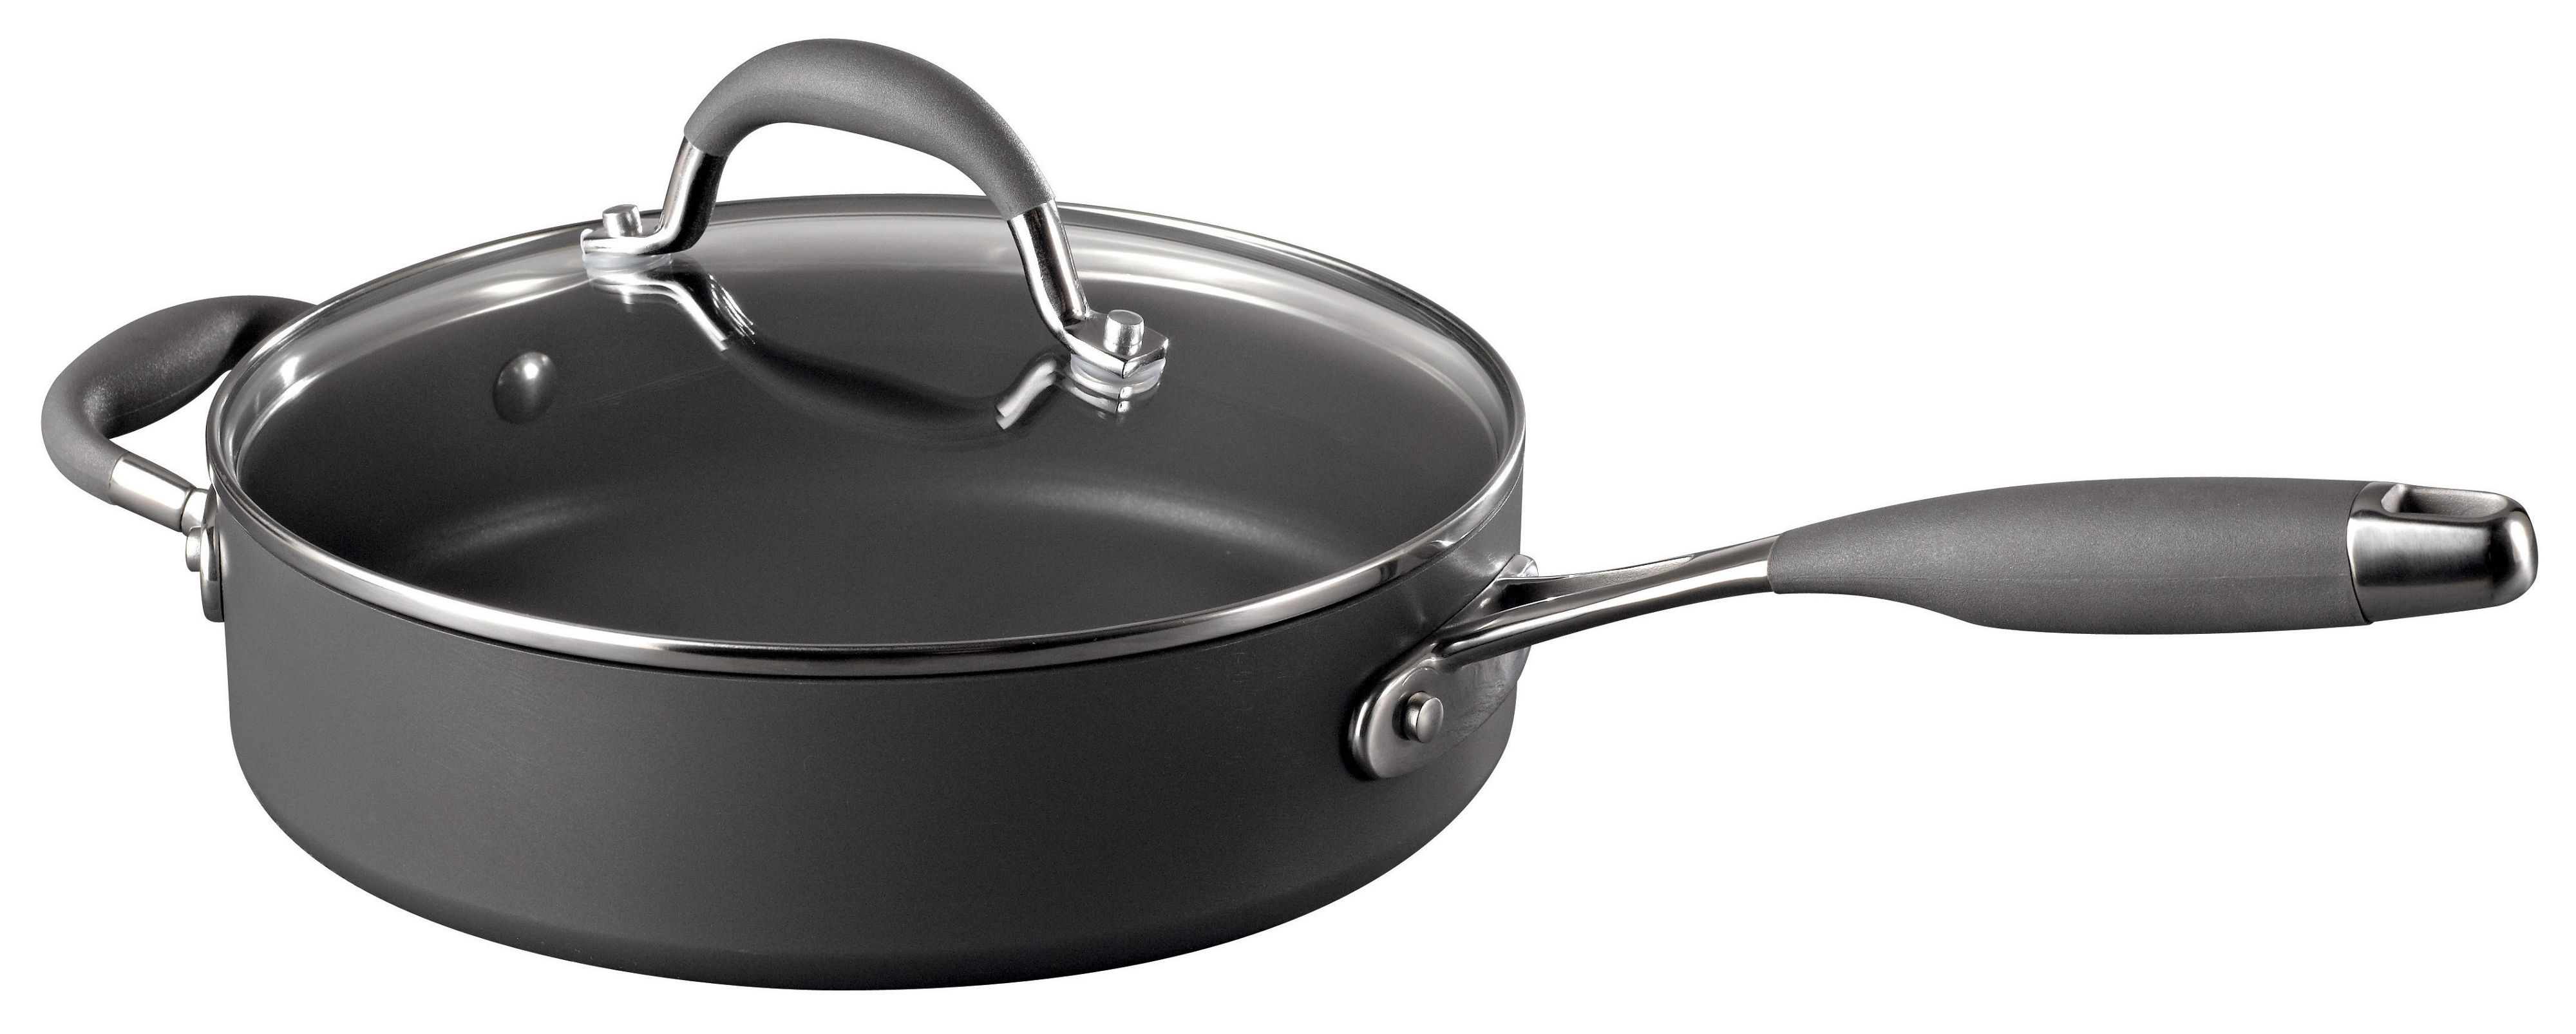 24cm Covered saute pan